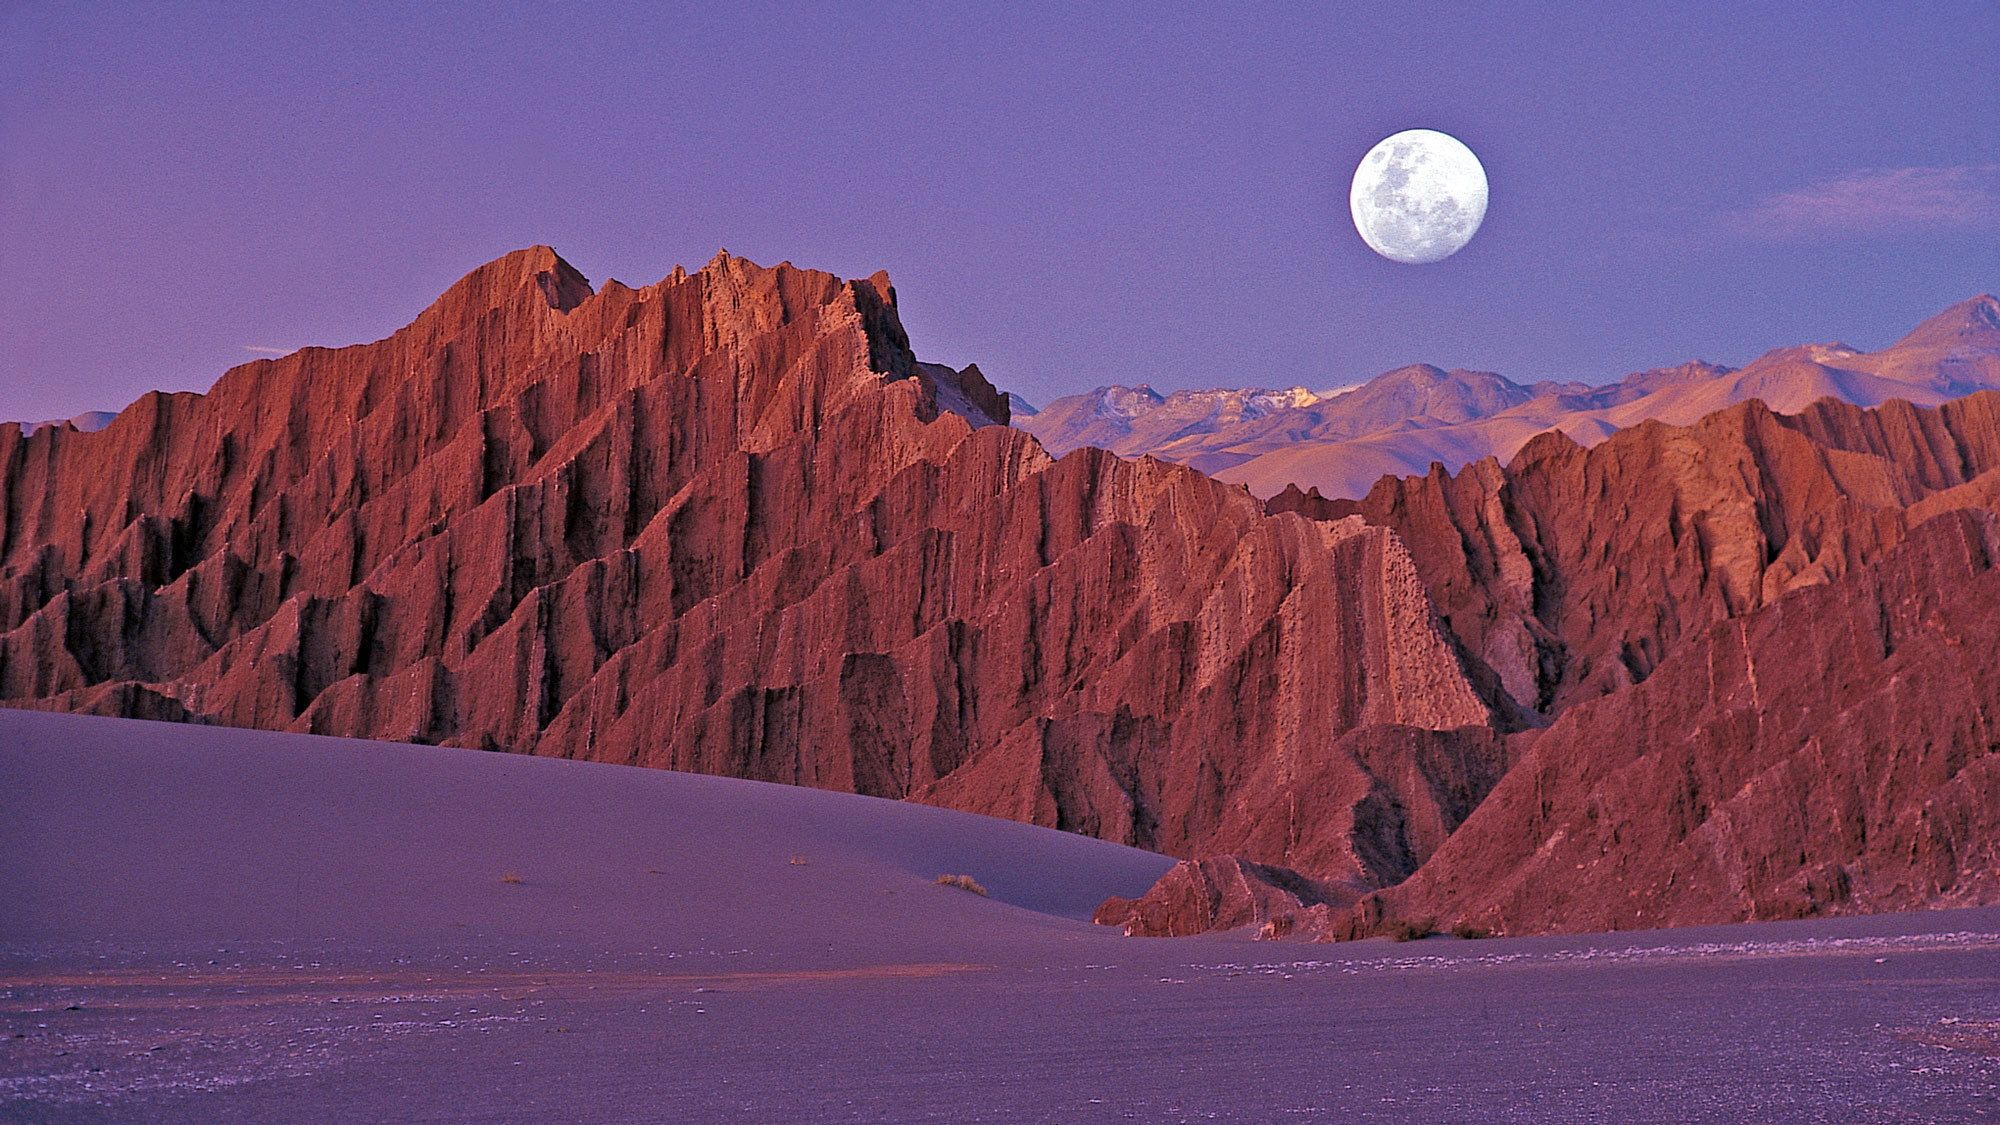 Moon rising over the mountains surrounding Moon Valley in Chile